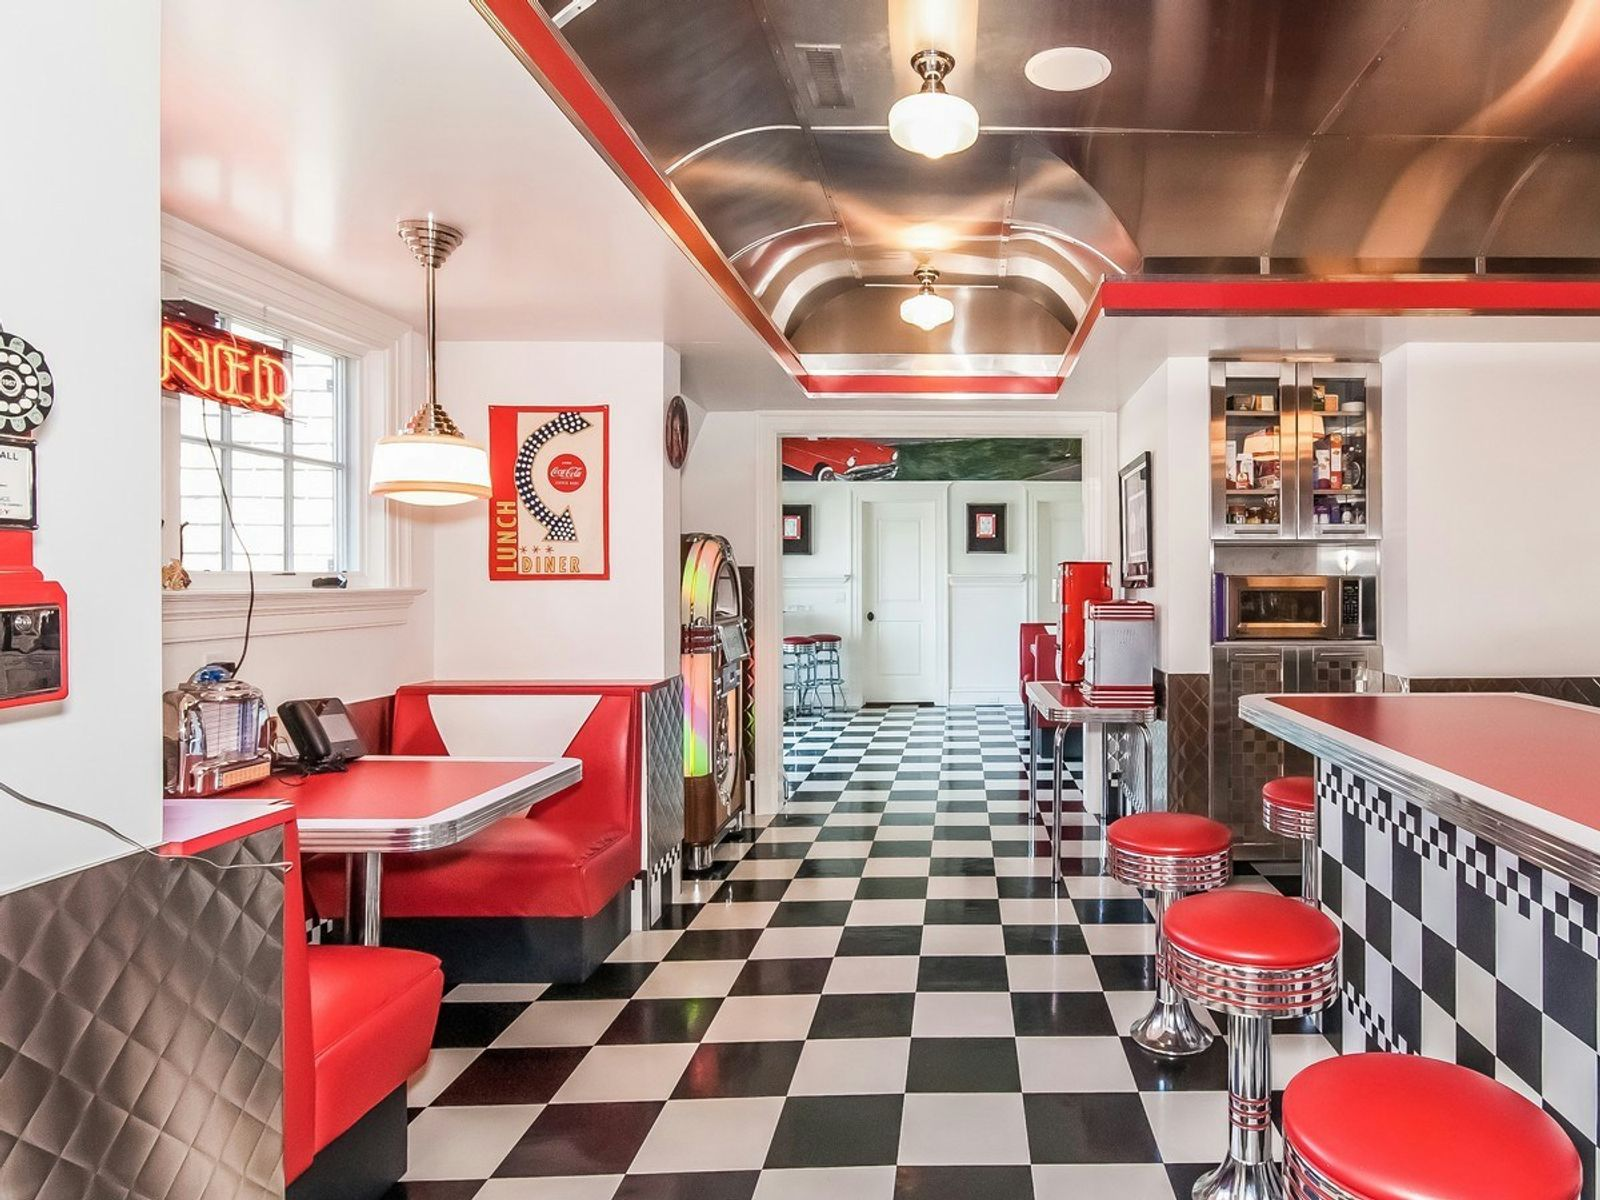 Replica 1950s diner serves 2nd fl. & home theater